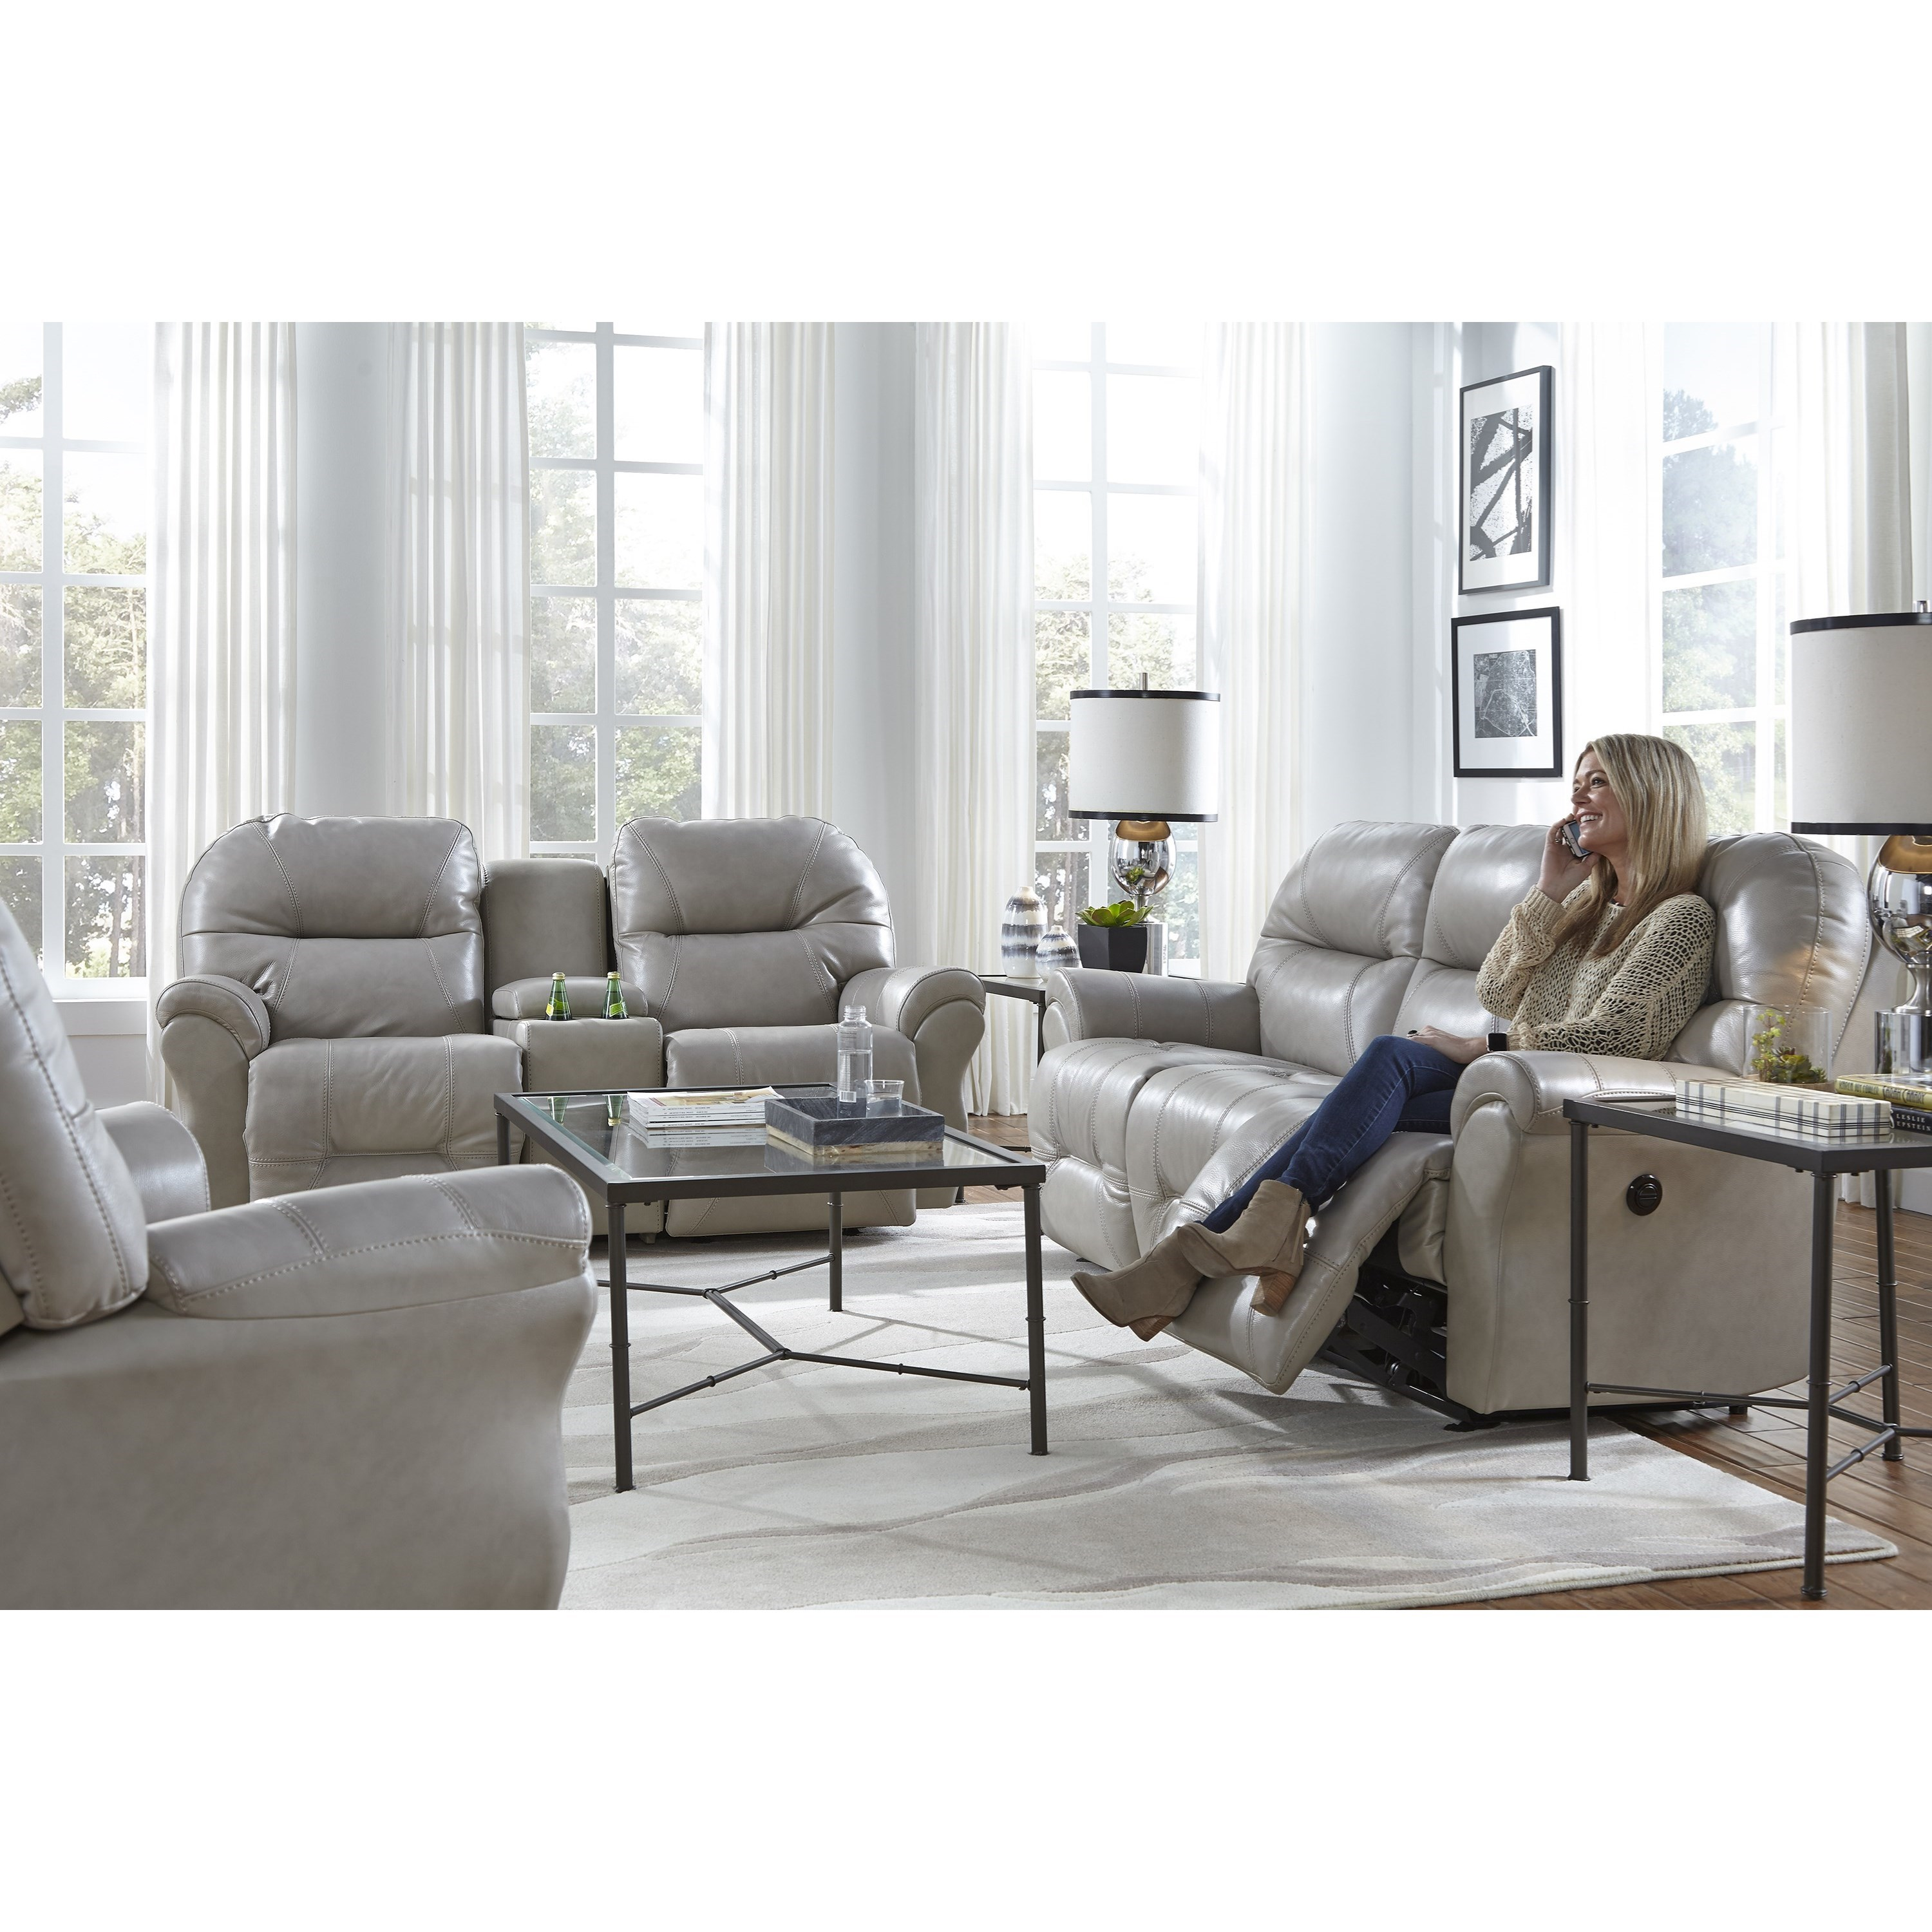 Bodie Reclining Living Room Group by Best Home Furnishings at Best Home Furnishings